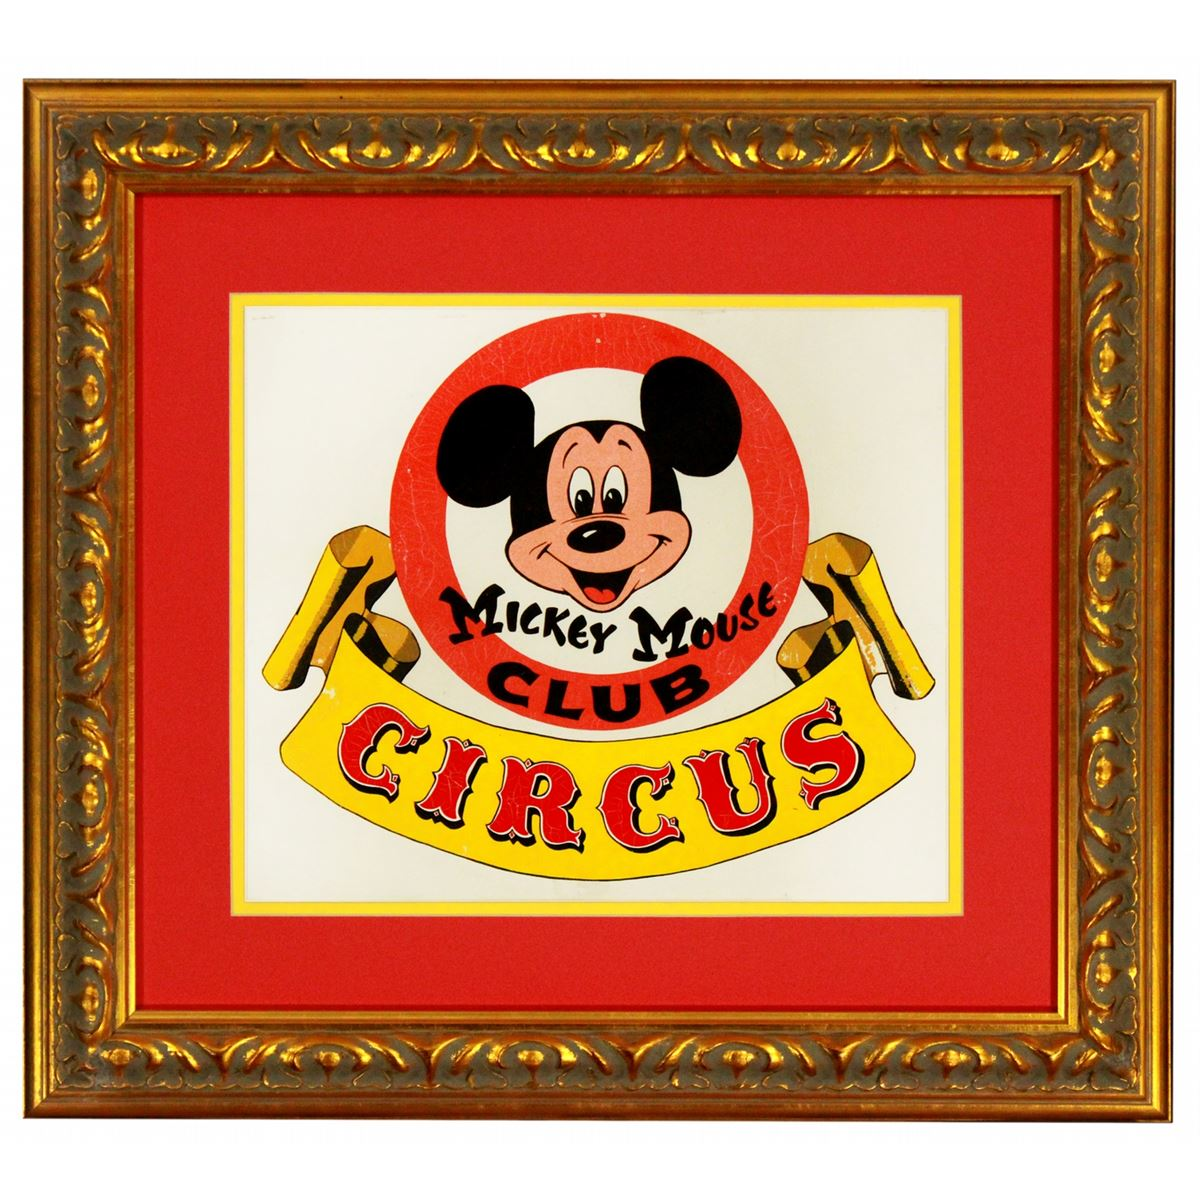 original bruce bushman design painting for the mickey mouse club